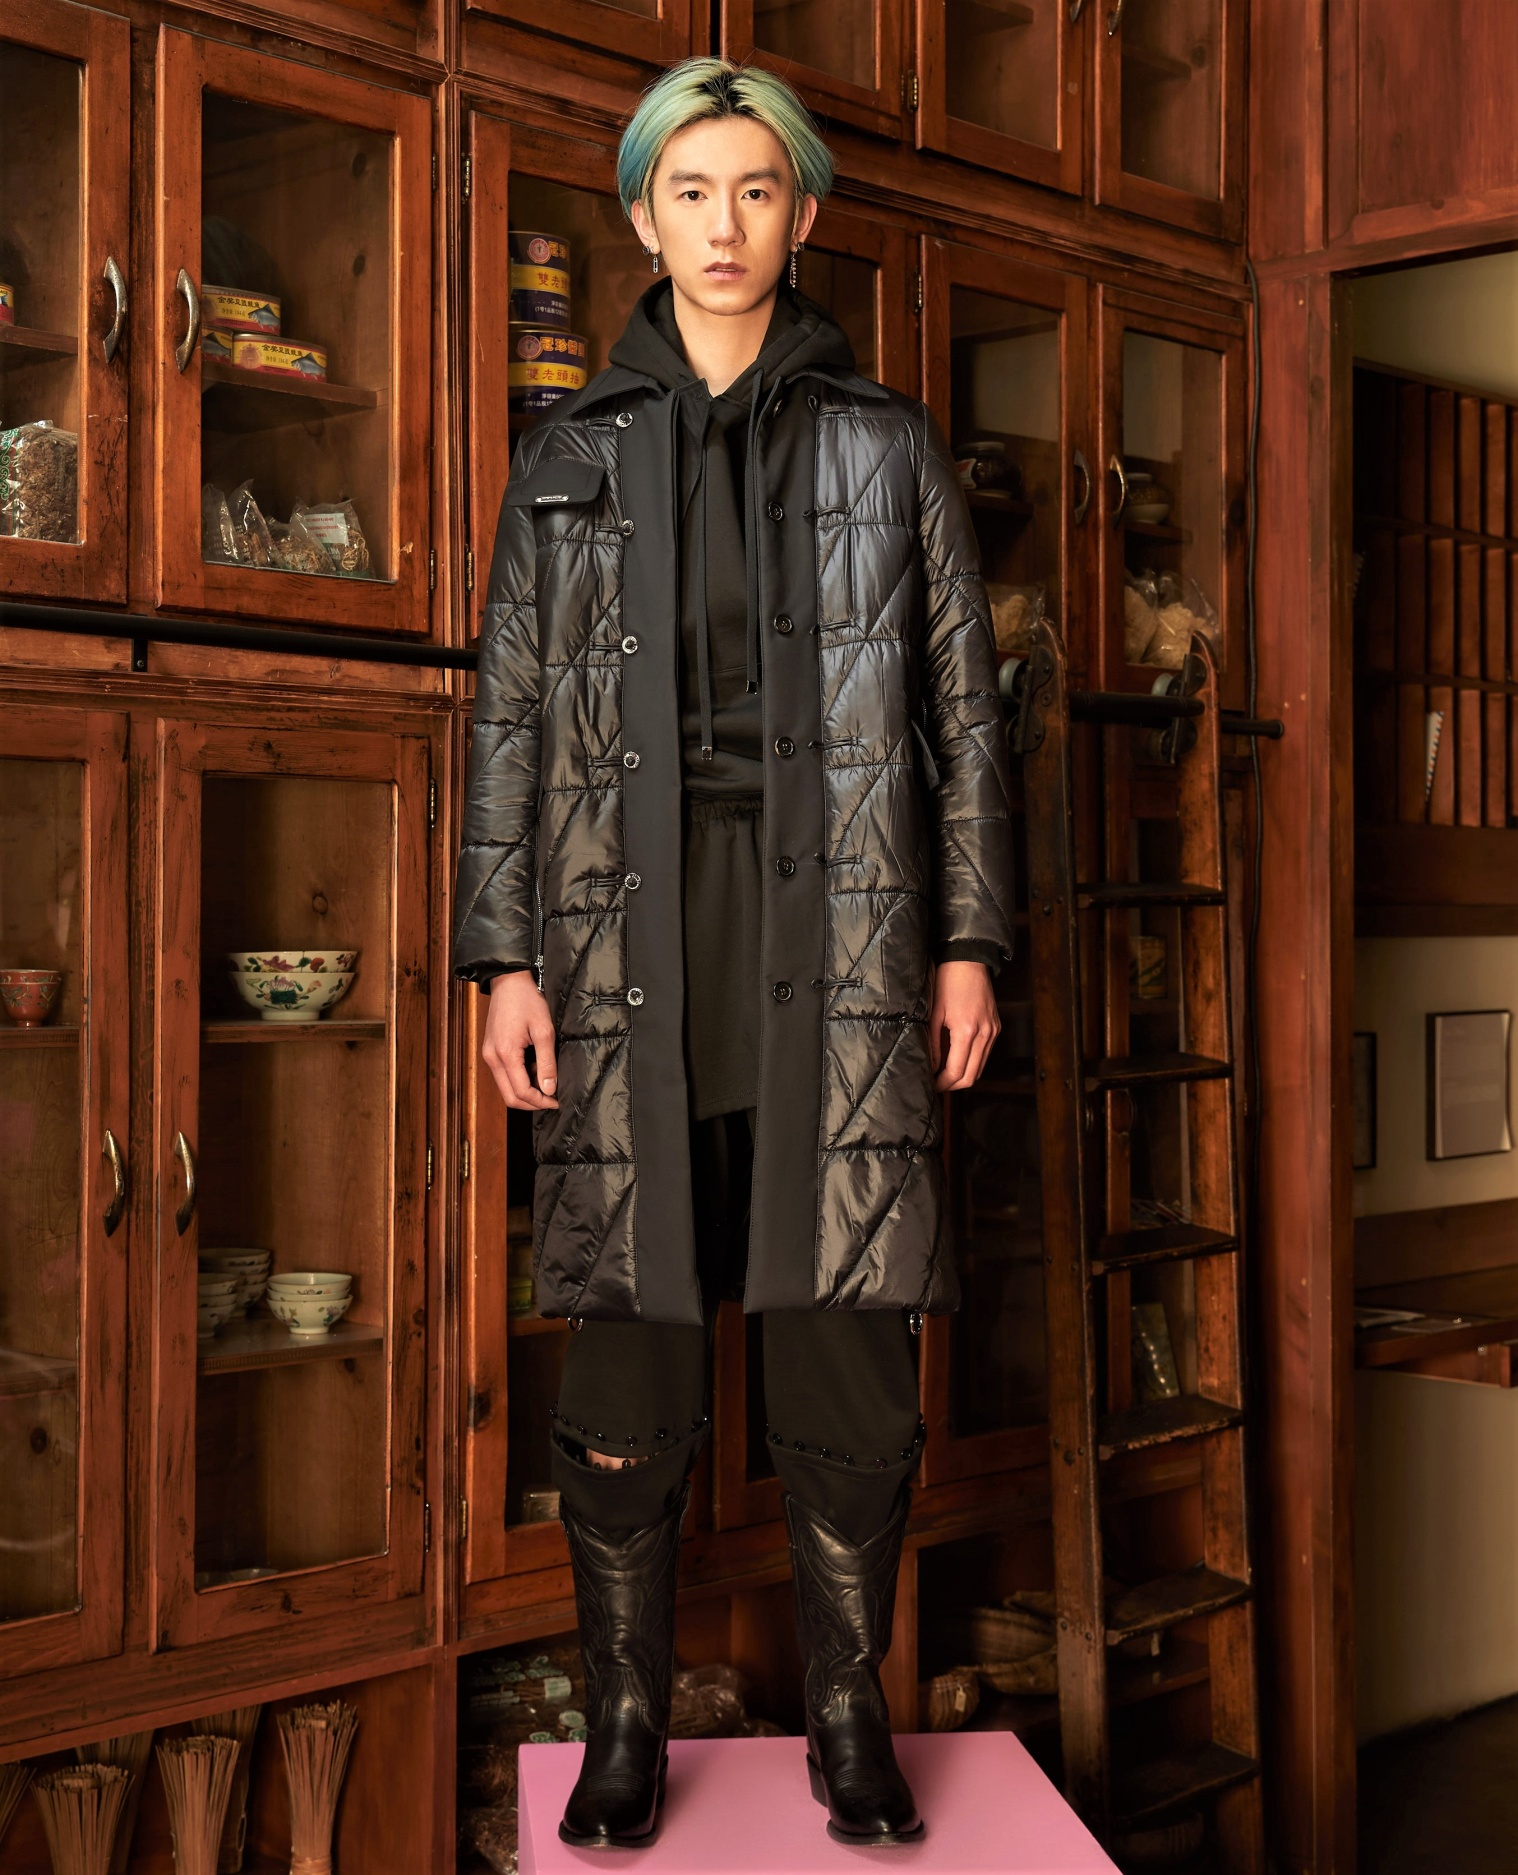 NYFW Private Policy Fall 2-21 blk puffer coat men cropped.jpg